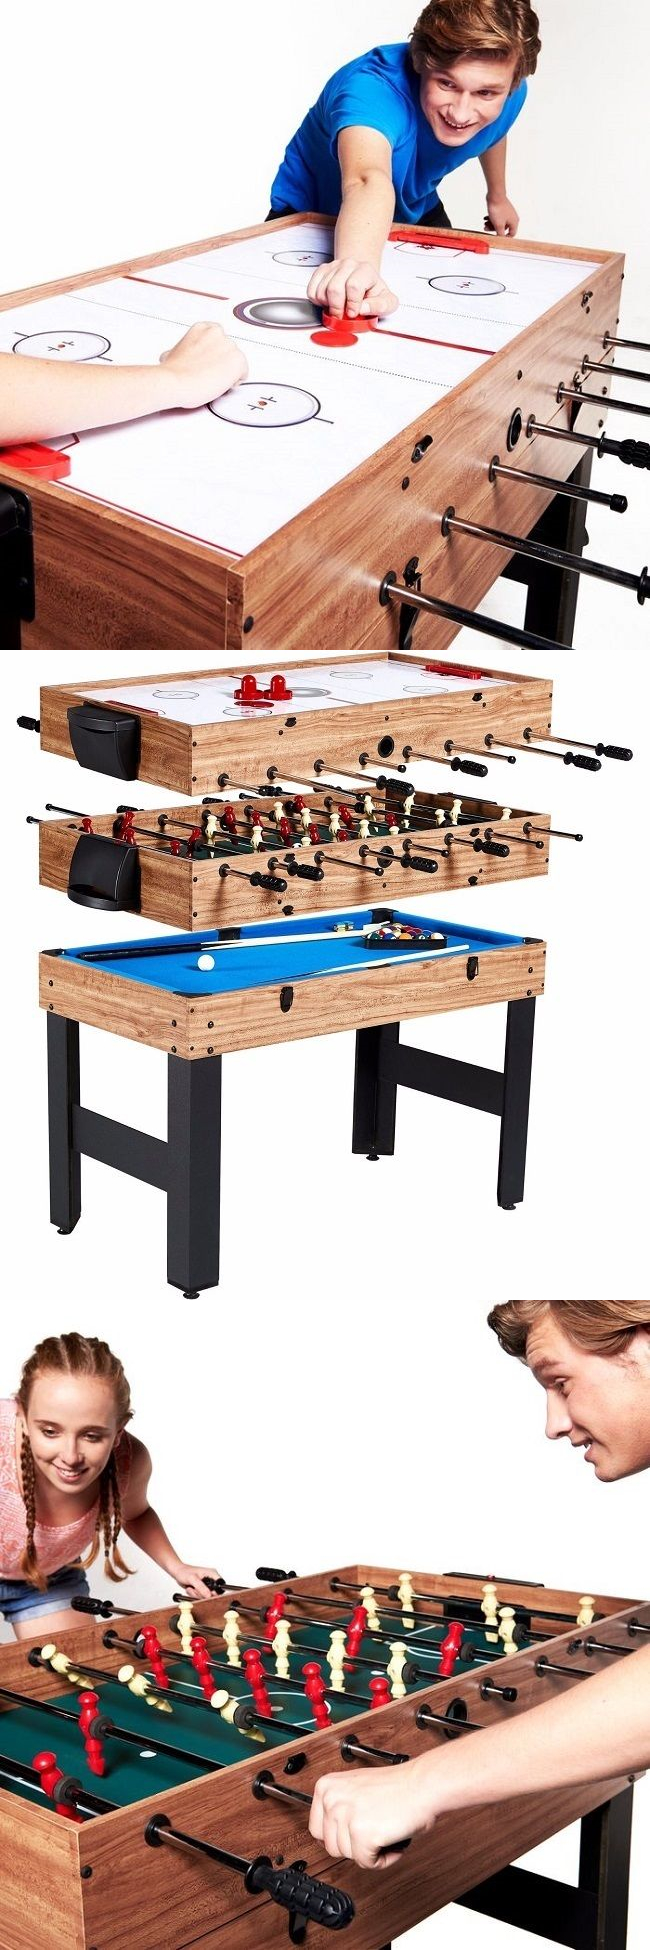 Other Indoor Games 36278: Game Table Hockey Pool Billiards Soccer Foosball  Kids Indoor Sports Tables